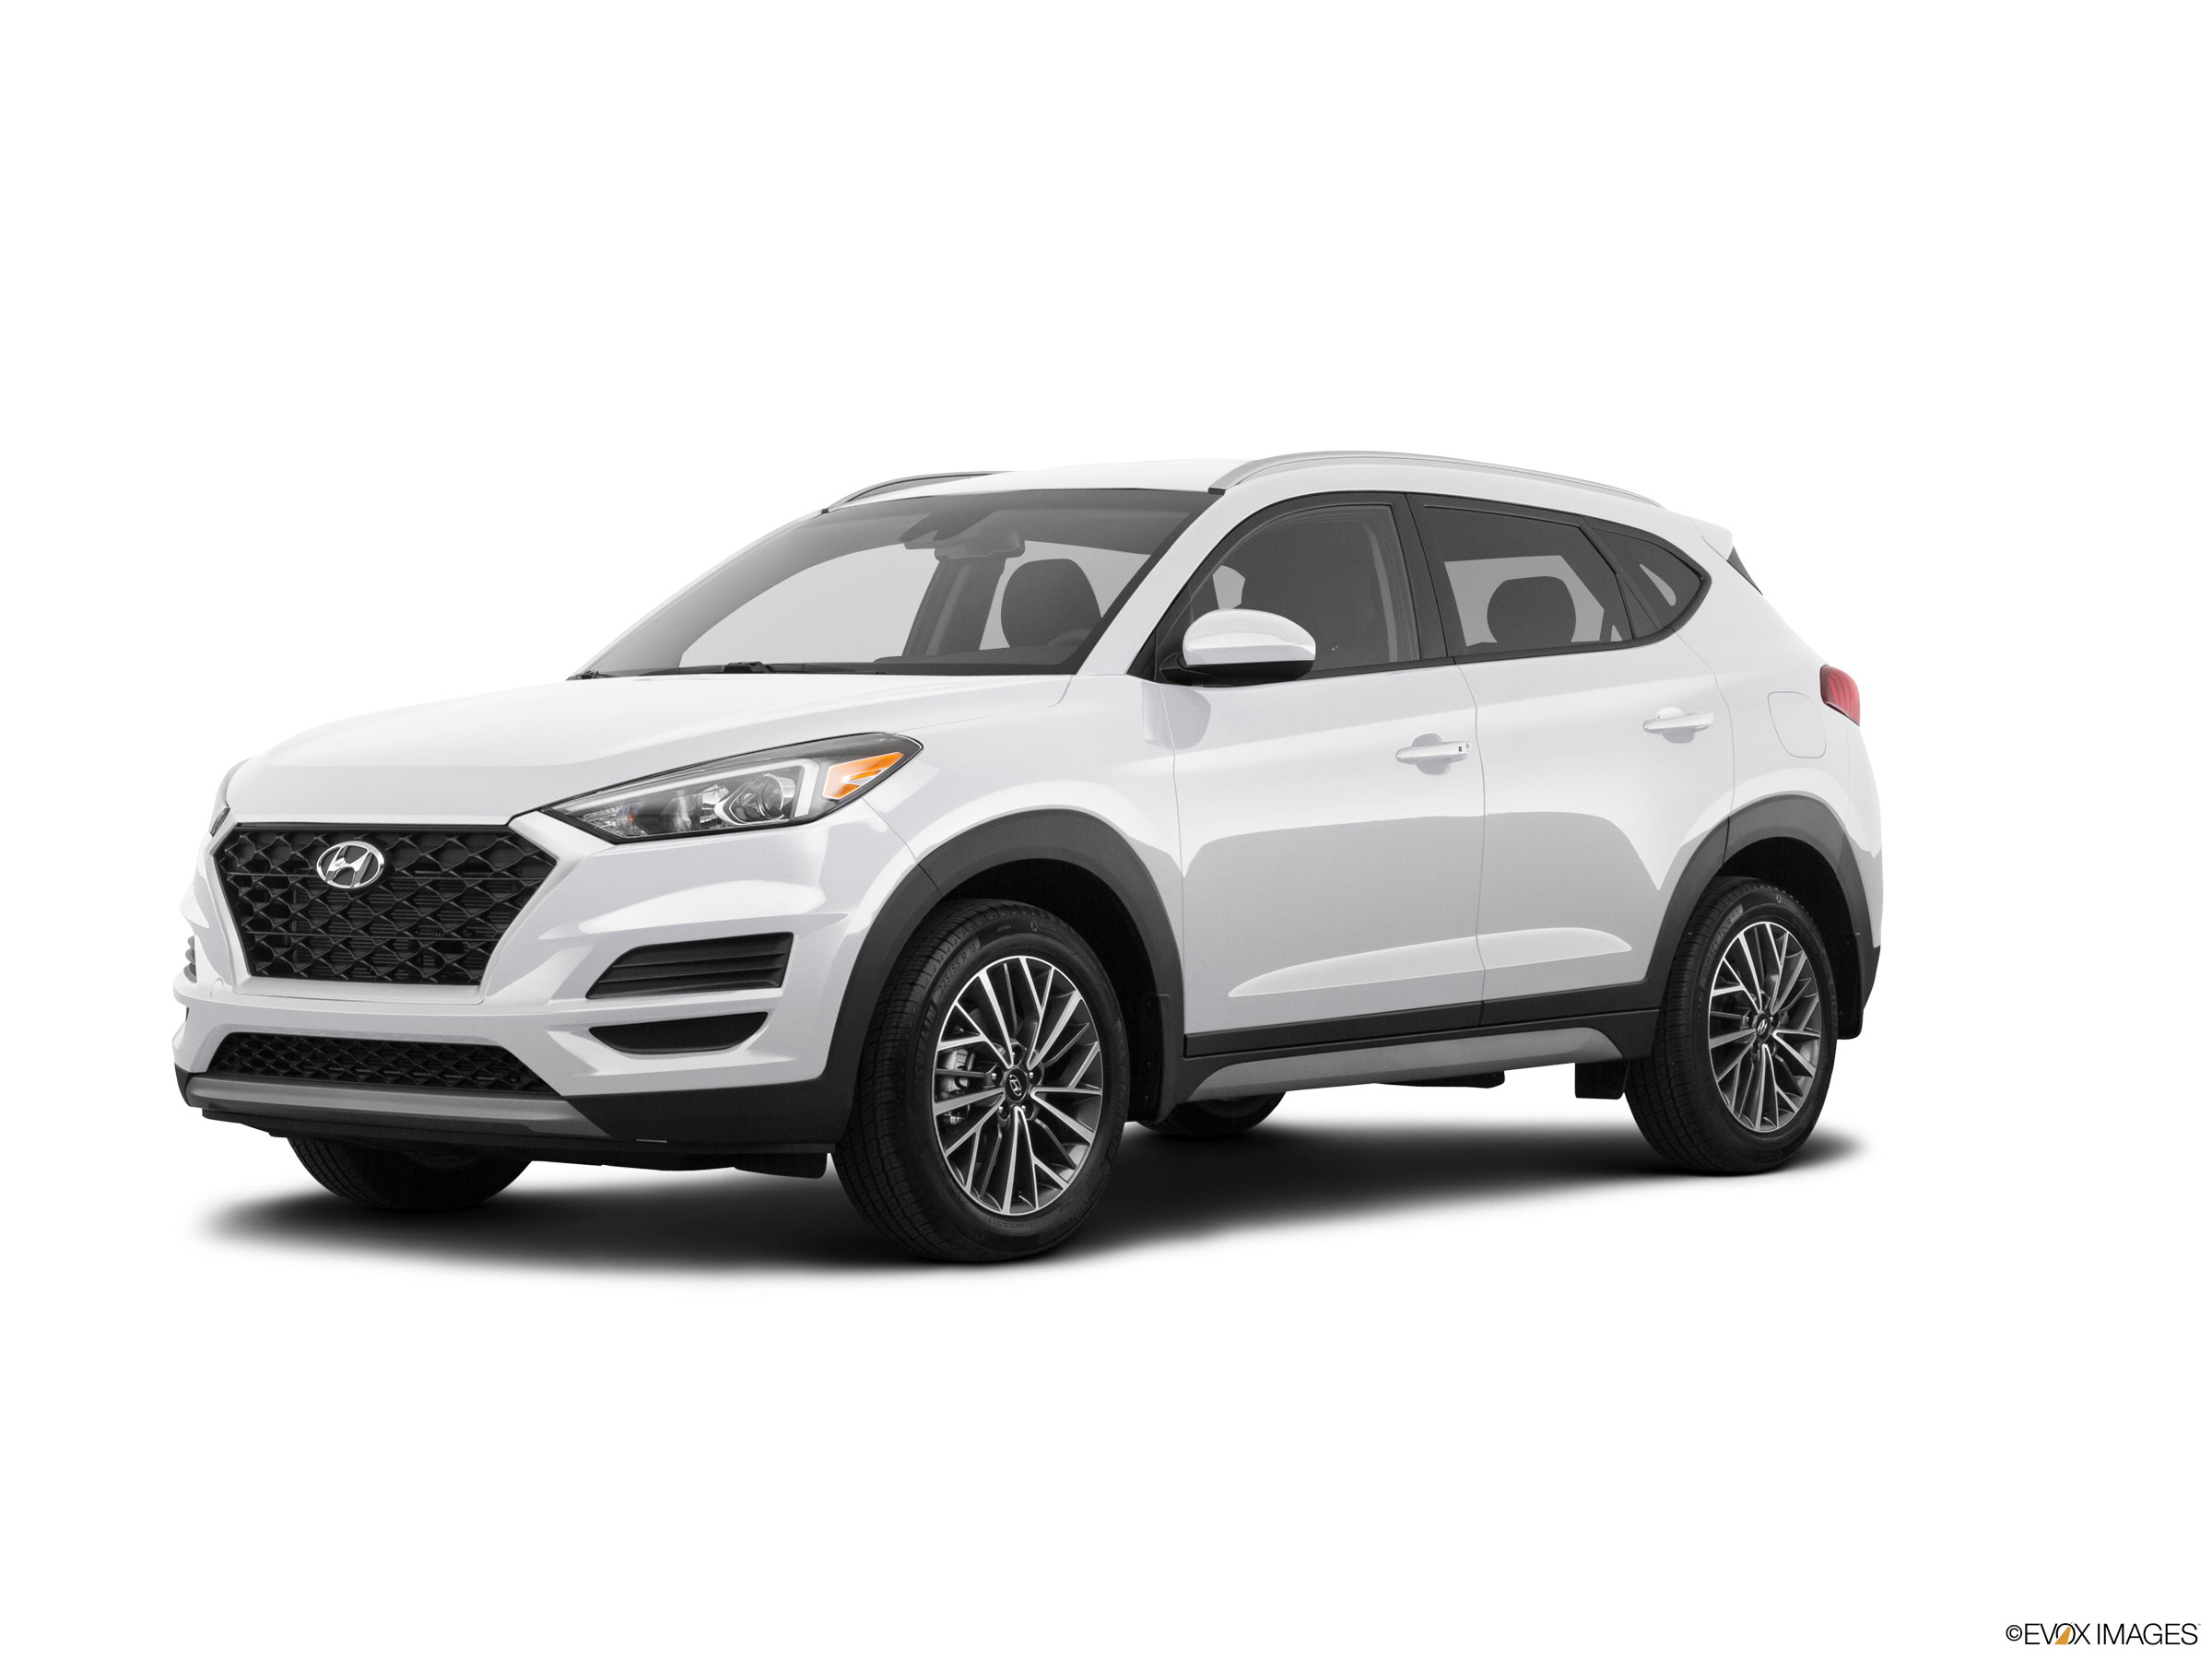 2021 hyundai tucson prices reviews pictures kelley blue book 2021 hyundai tucson prices reviews